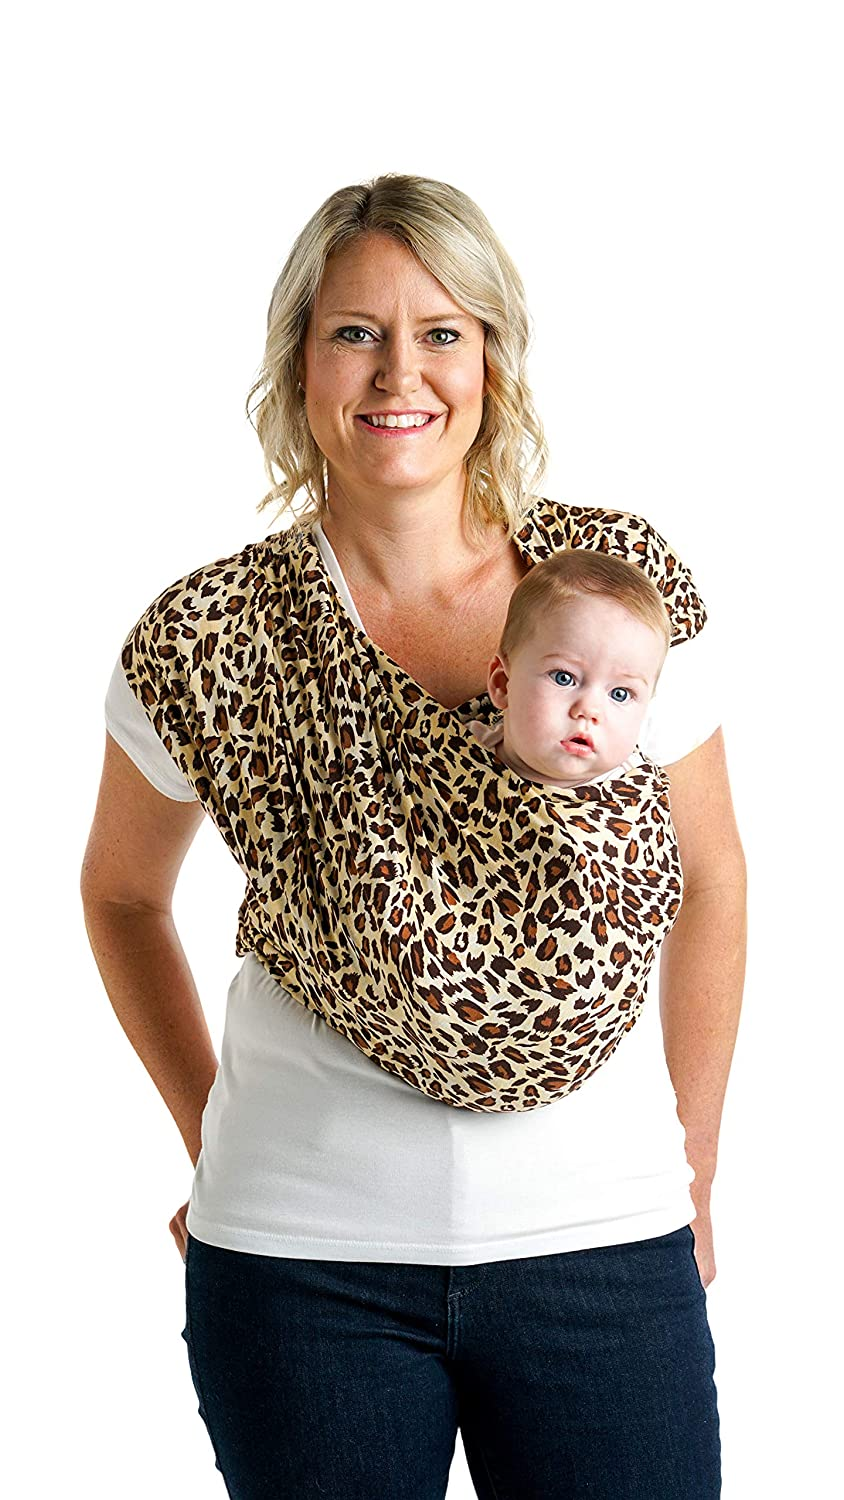 S Leopard Love Carry Newborn up to 35 lbs Simple Wrap Holder for Babywearing Infant and Child Sling No Rings or Buckles W Dress 6-8 // M Jacket 37-38 Baby K/'tan Print Baby Wrap Carrier